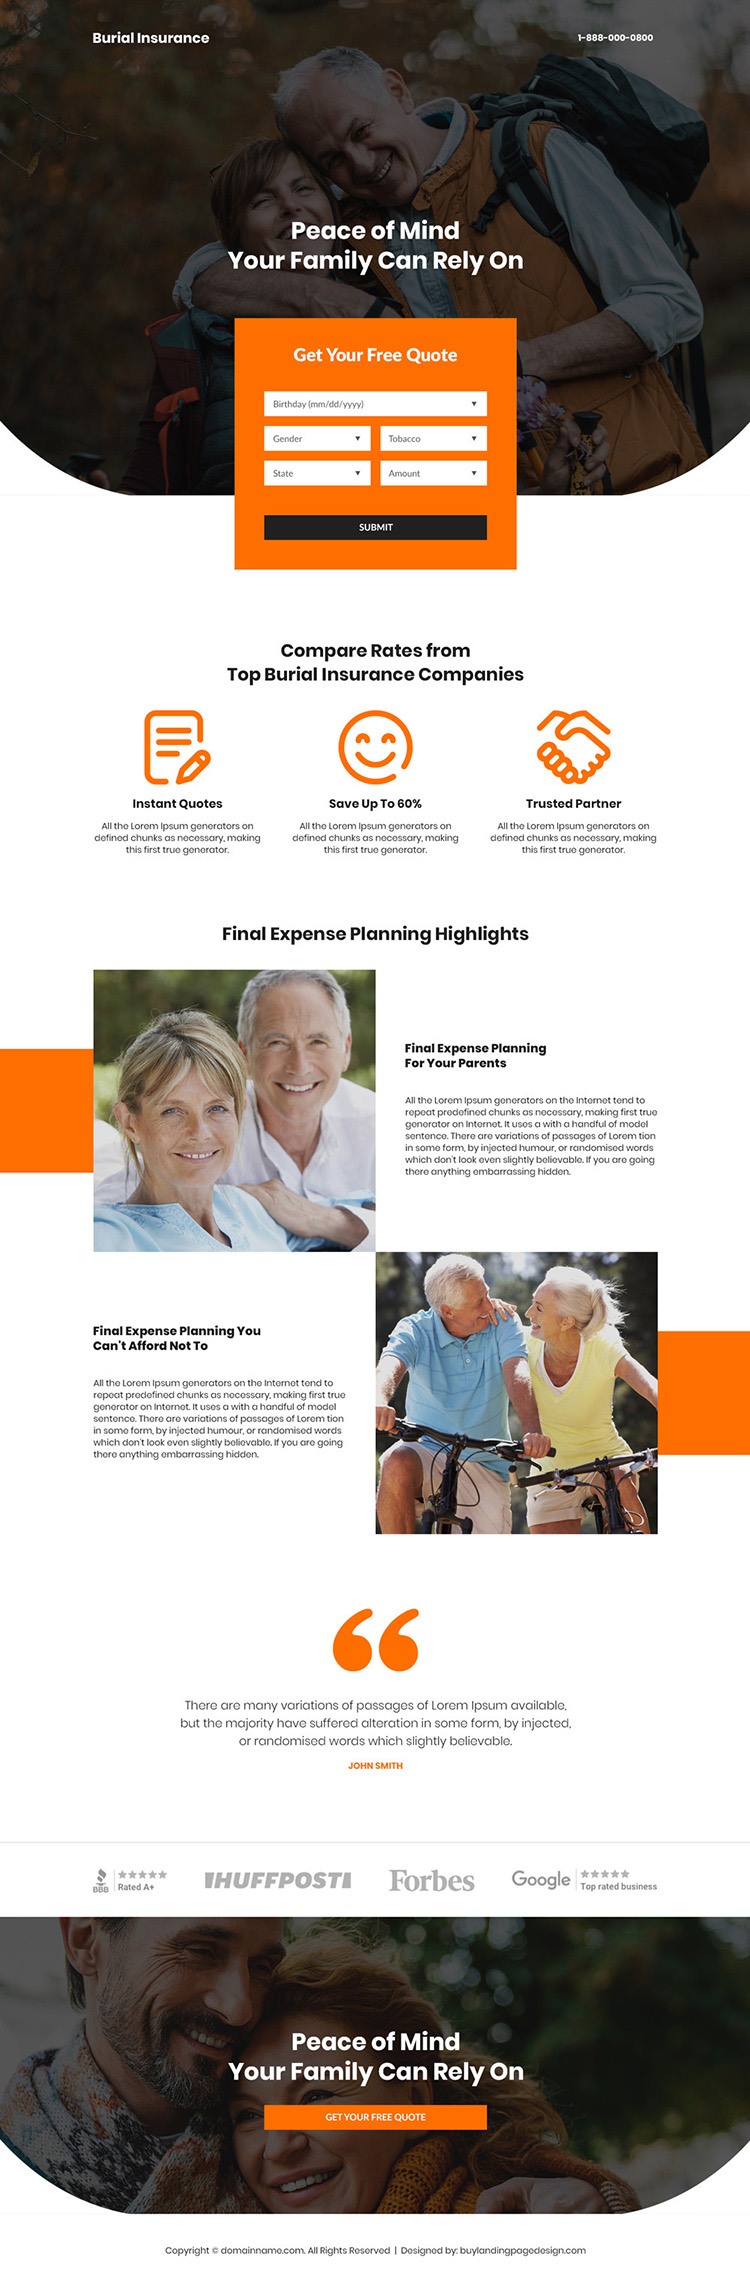 top burial insurance companies professional lead generating landing page